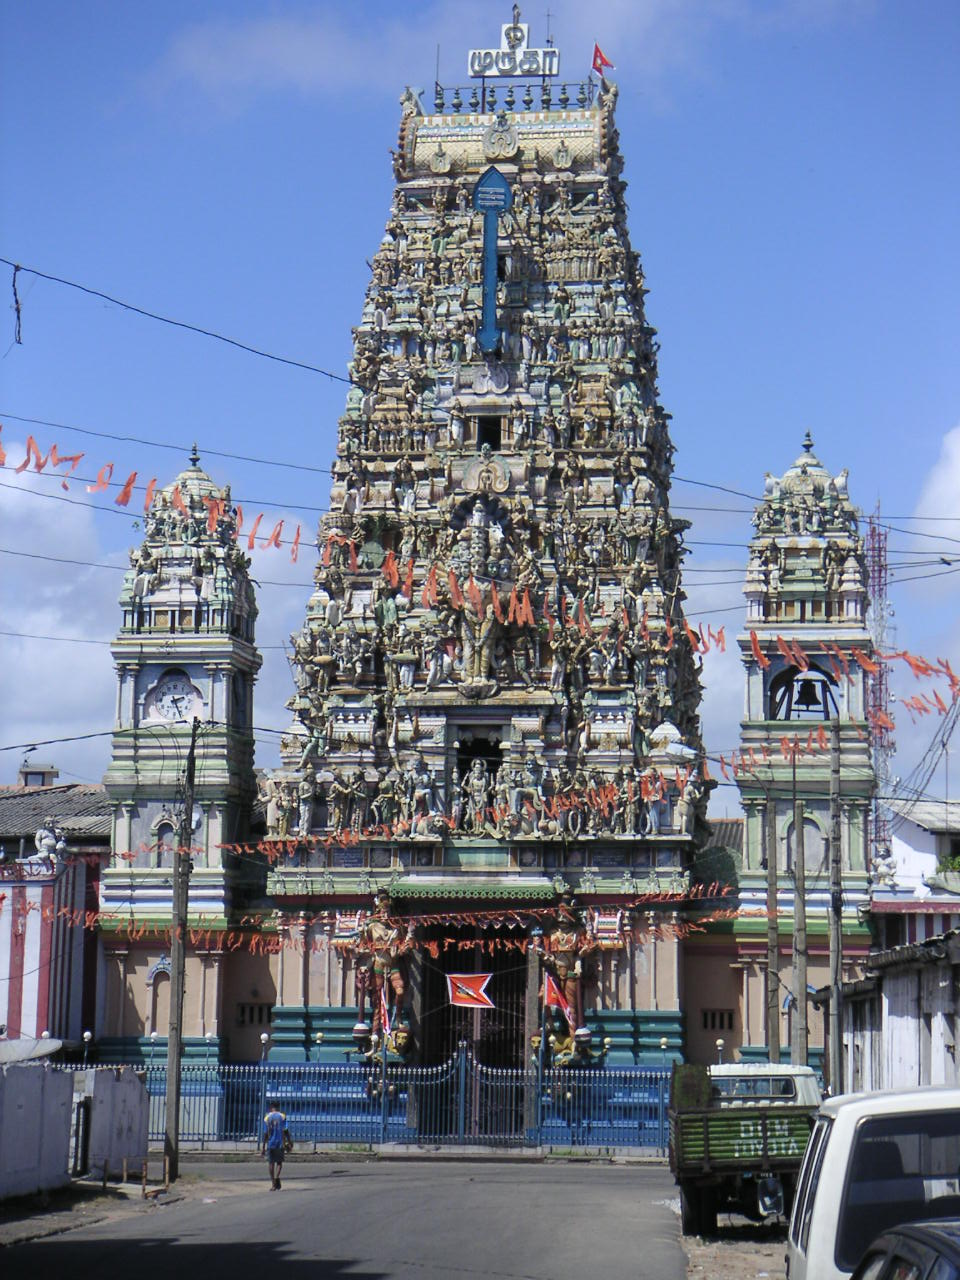 hinduism architecture The indo-saracenic architecture combined the features of hindu, islamic and western elements the colonial architecture exhibited itself through institutional, civic and utilitarian buildings such as post offices, railway stations, rest houses and government buildings.